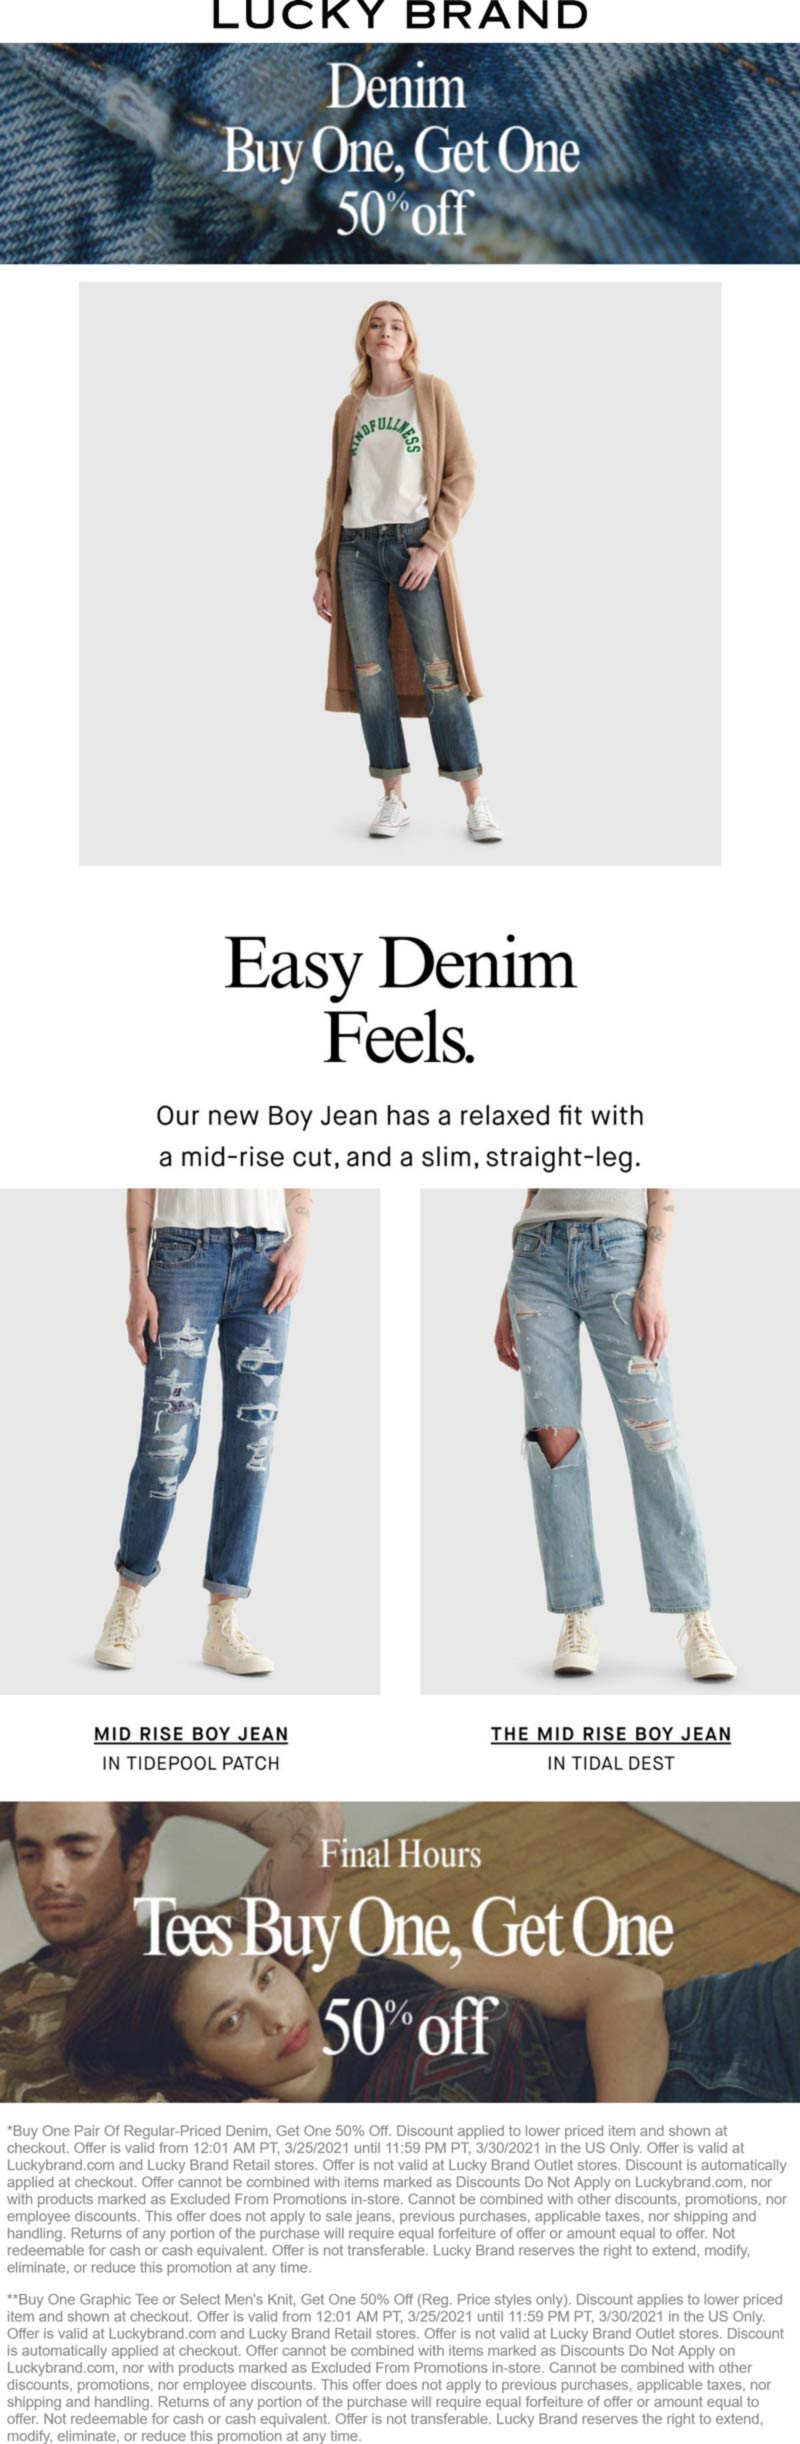 Lucky Brand stores Coupon  Second denim or tee 50% off today at Lucky Brand #luckybrand